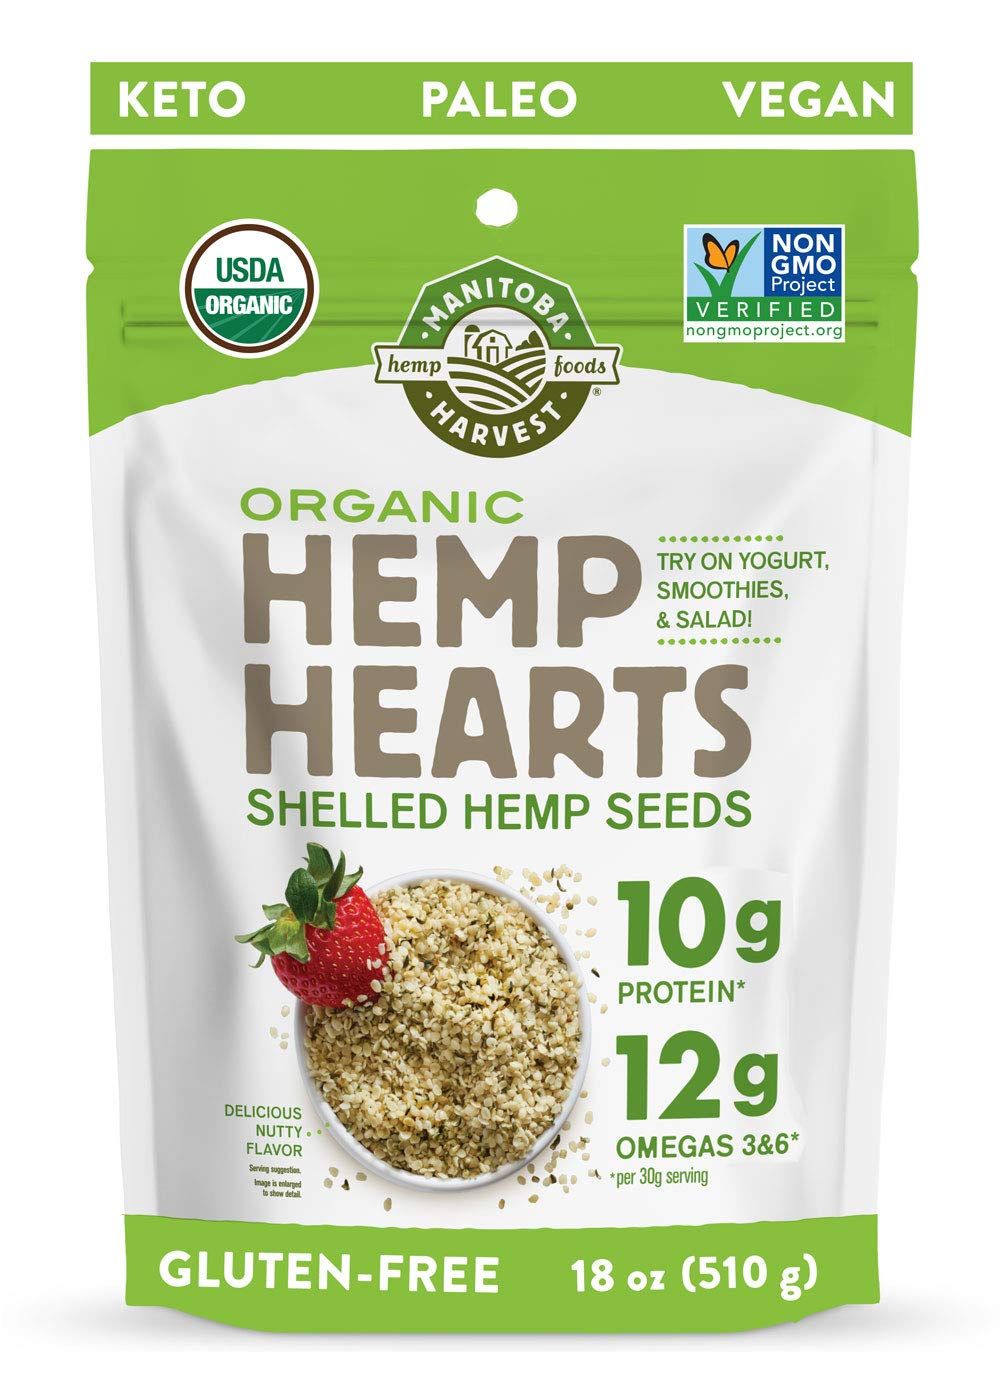 Manitoba Harvest Organic Hemp Hearts Shelled Hemp Seeds, 18oz; with 10g Protein & 12g Omegas per Serving, Non-GMO, Gluten Free